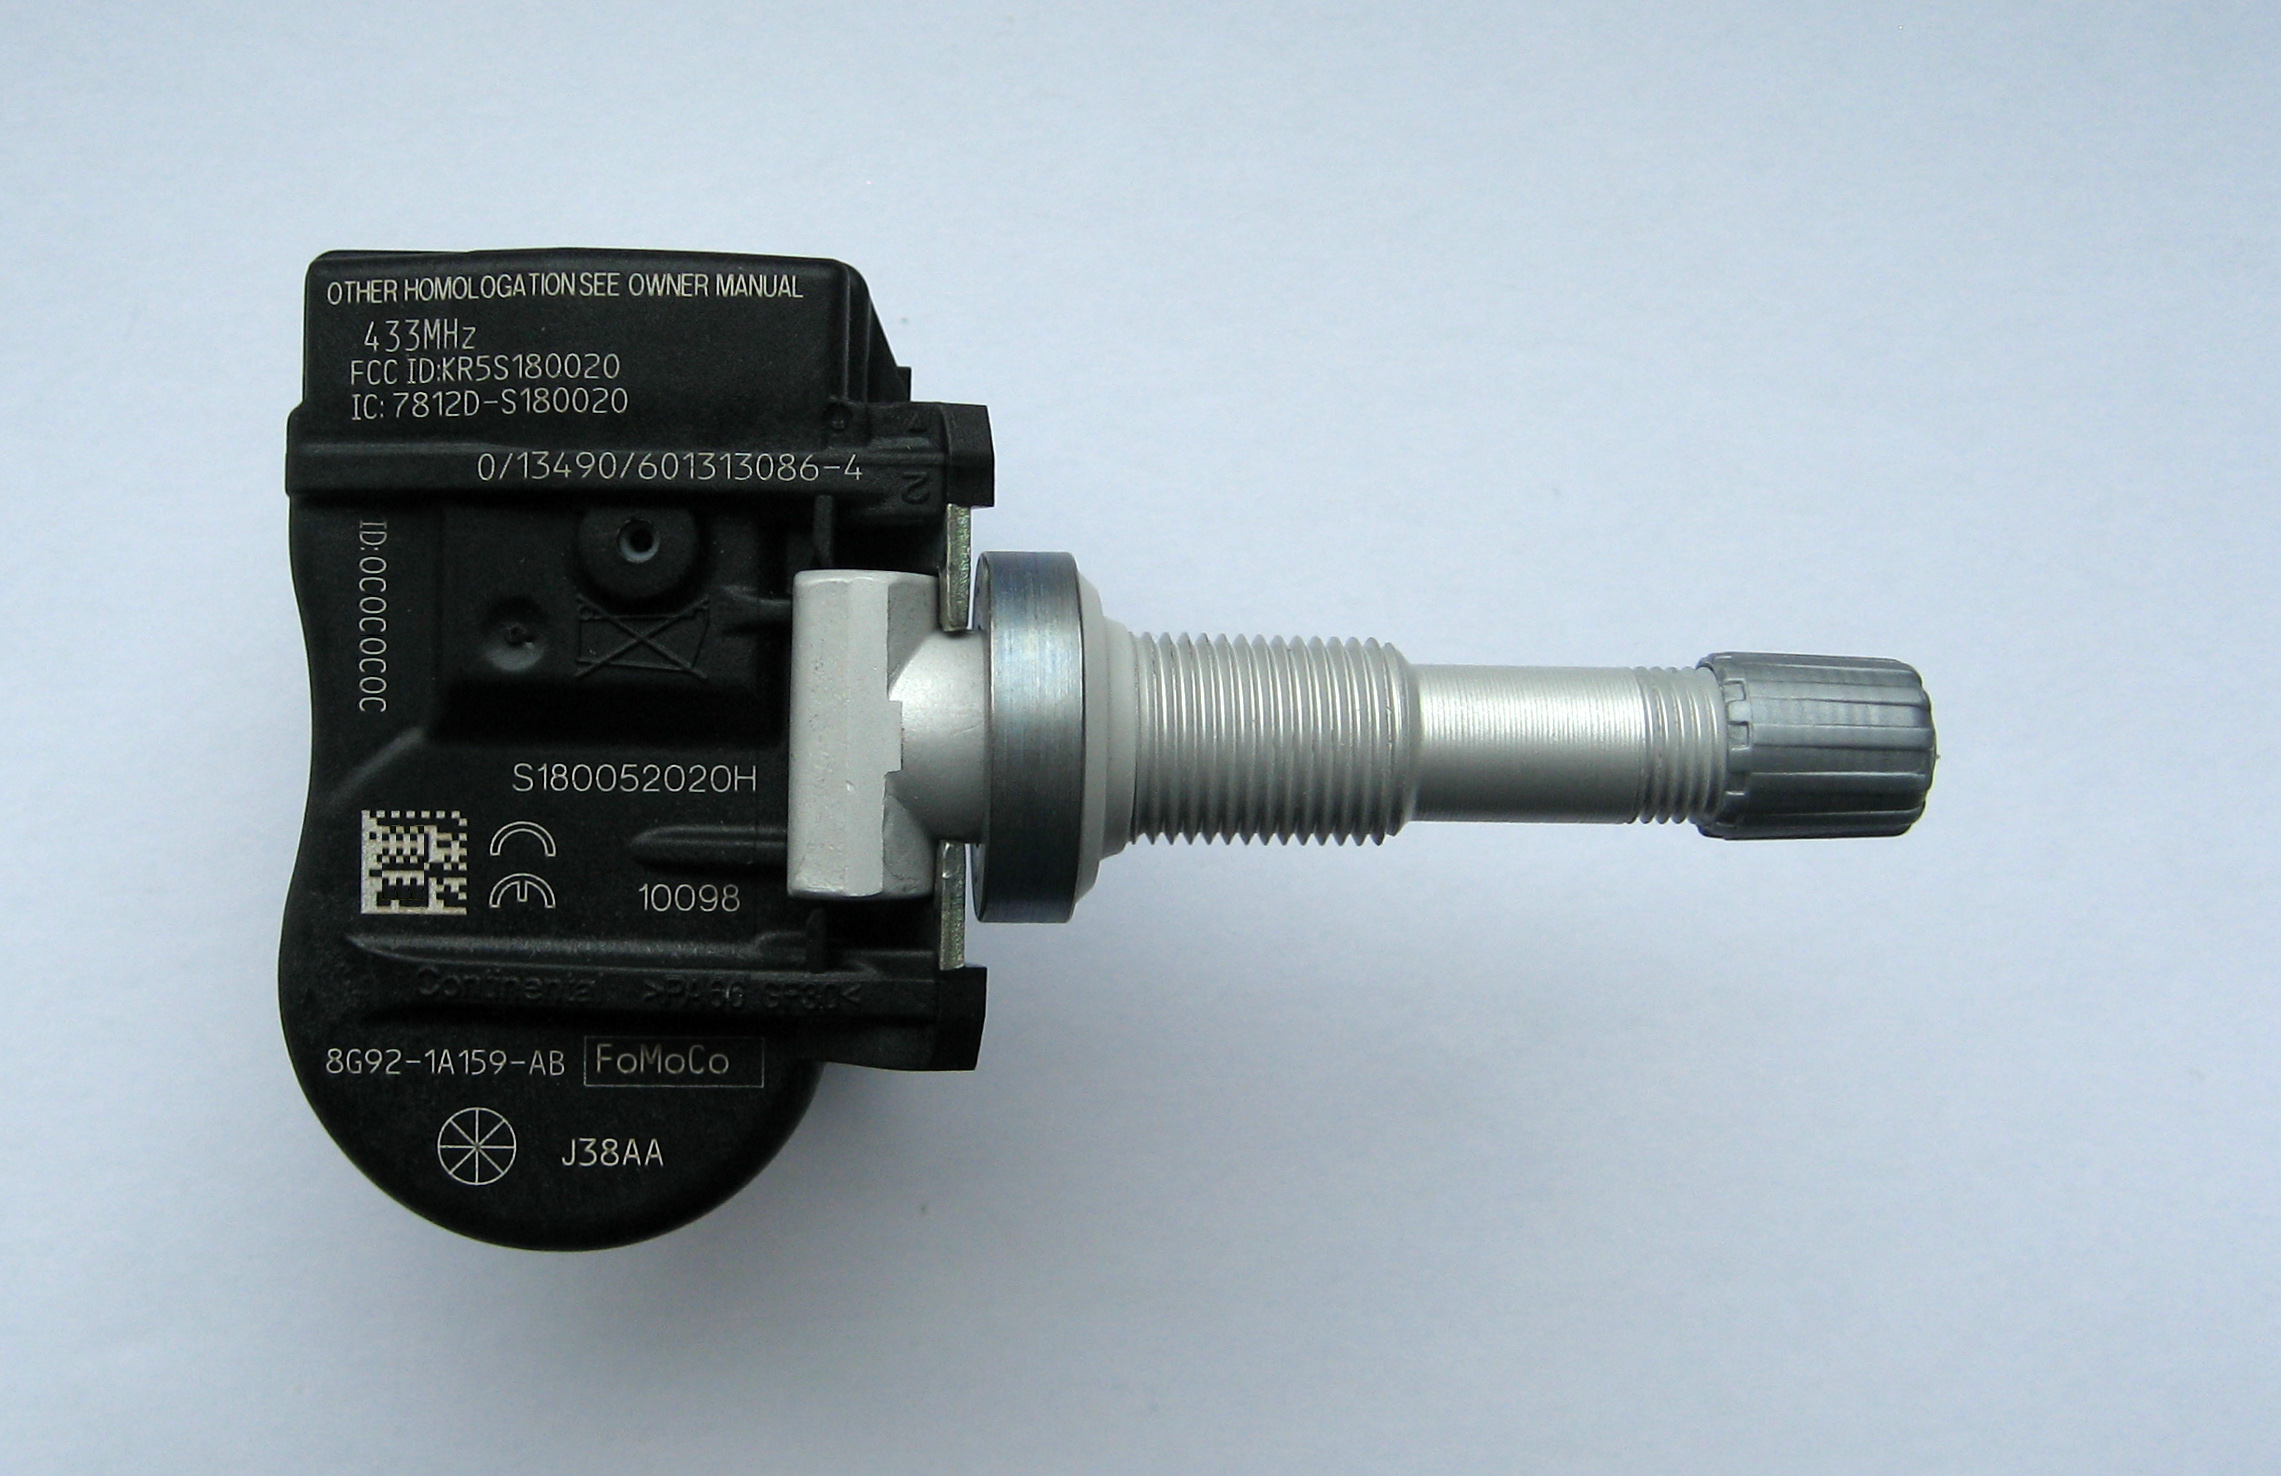 Tire-pressure monitoring system - Wikiwand